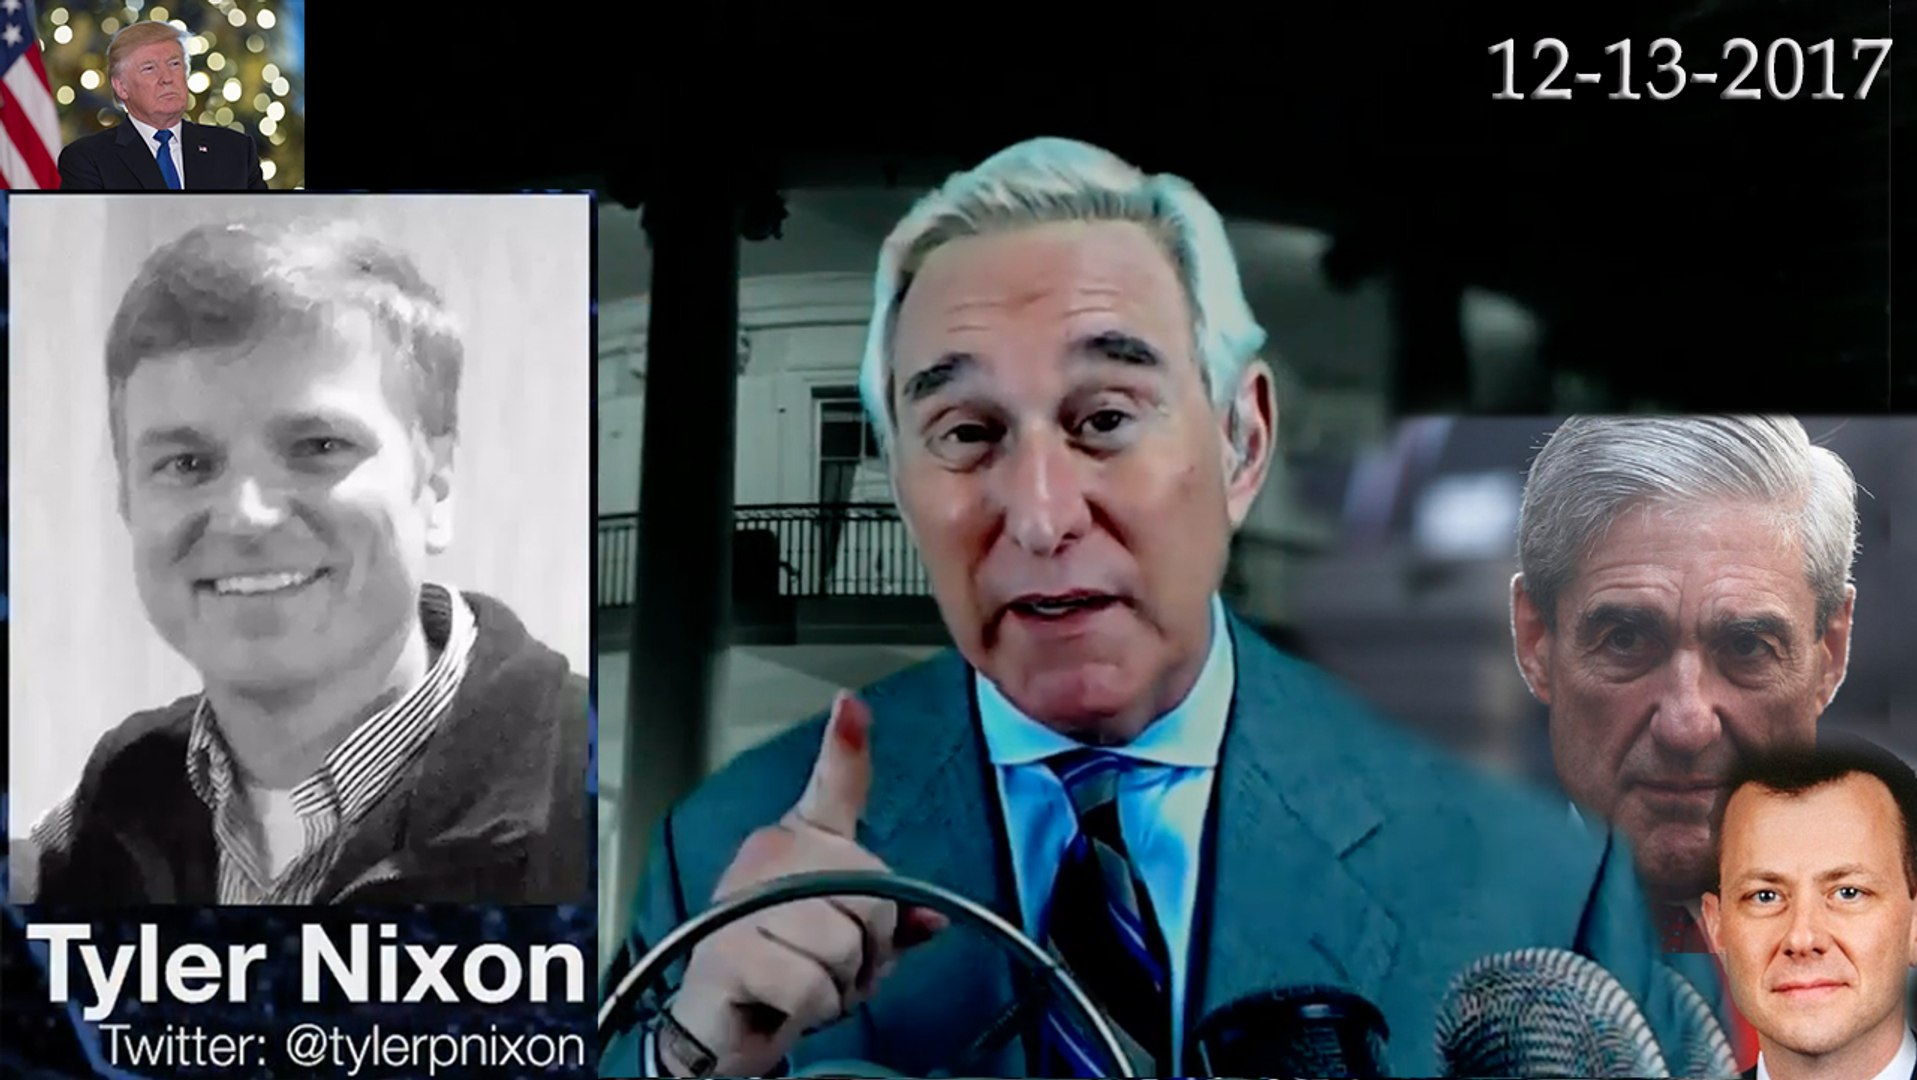 Roger Stone Tyler Nixon Conflicts Of Interest Mueller Probe Peter Strzok Others Current News 12 13 17 Video Dailymotion .tyler nixon stepmom, xander corvus, tight jeans, seth gamble, james deen, tyler nixon mom, lucas frost, tanya tate, tyler nixon stepmom milf, step mom, tyler, nixon, tyler nixon. dailymotion